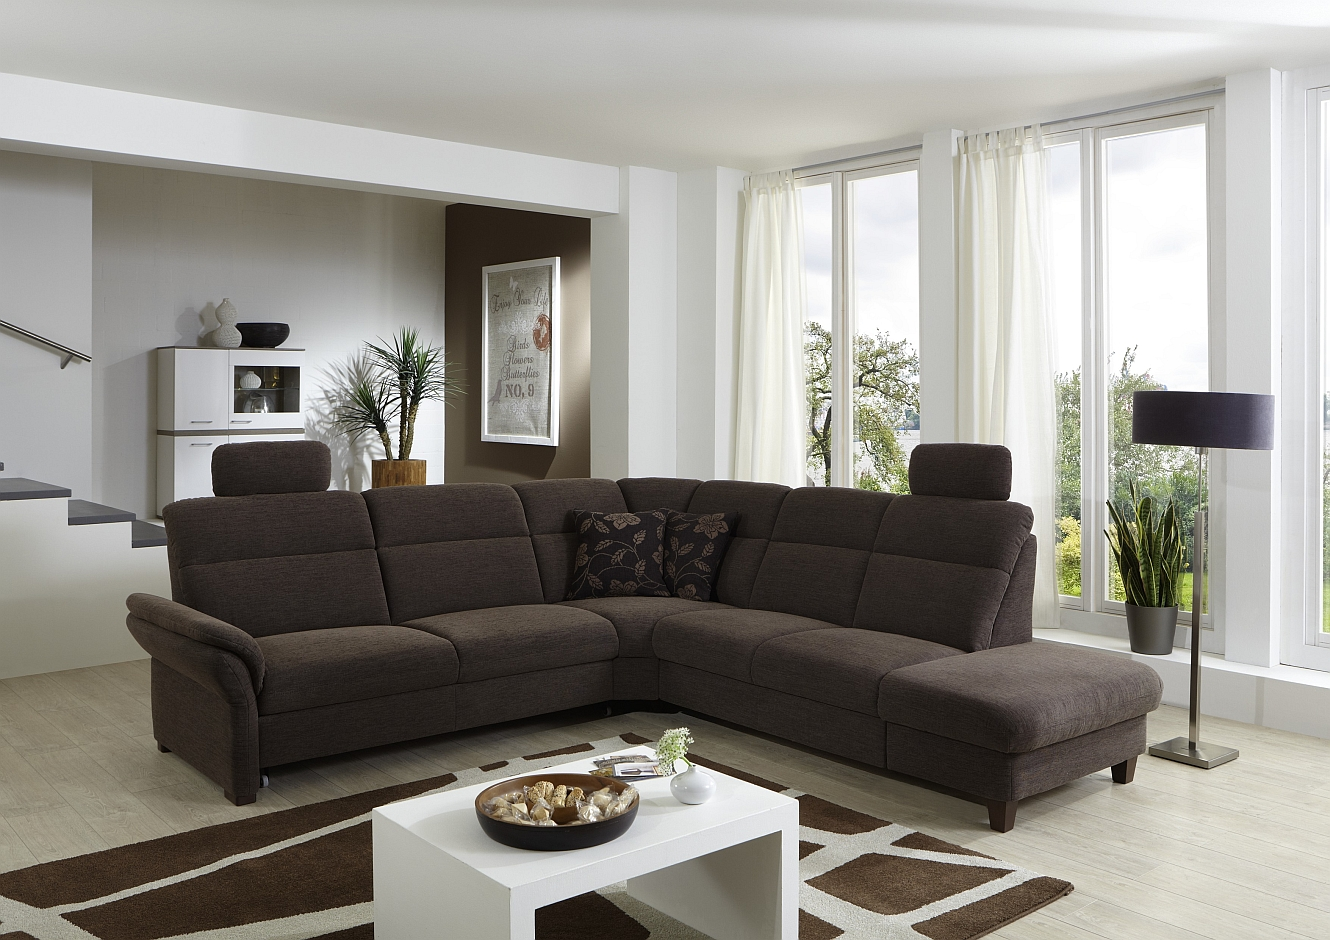 Casada Sessel Zehdenick 2018|jaguar|sofa|mayer-mÖbel